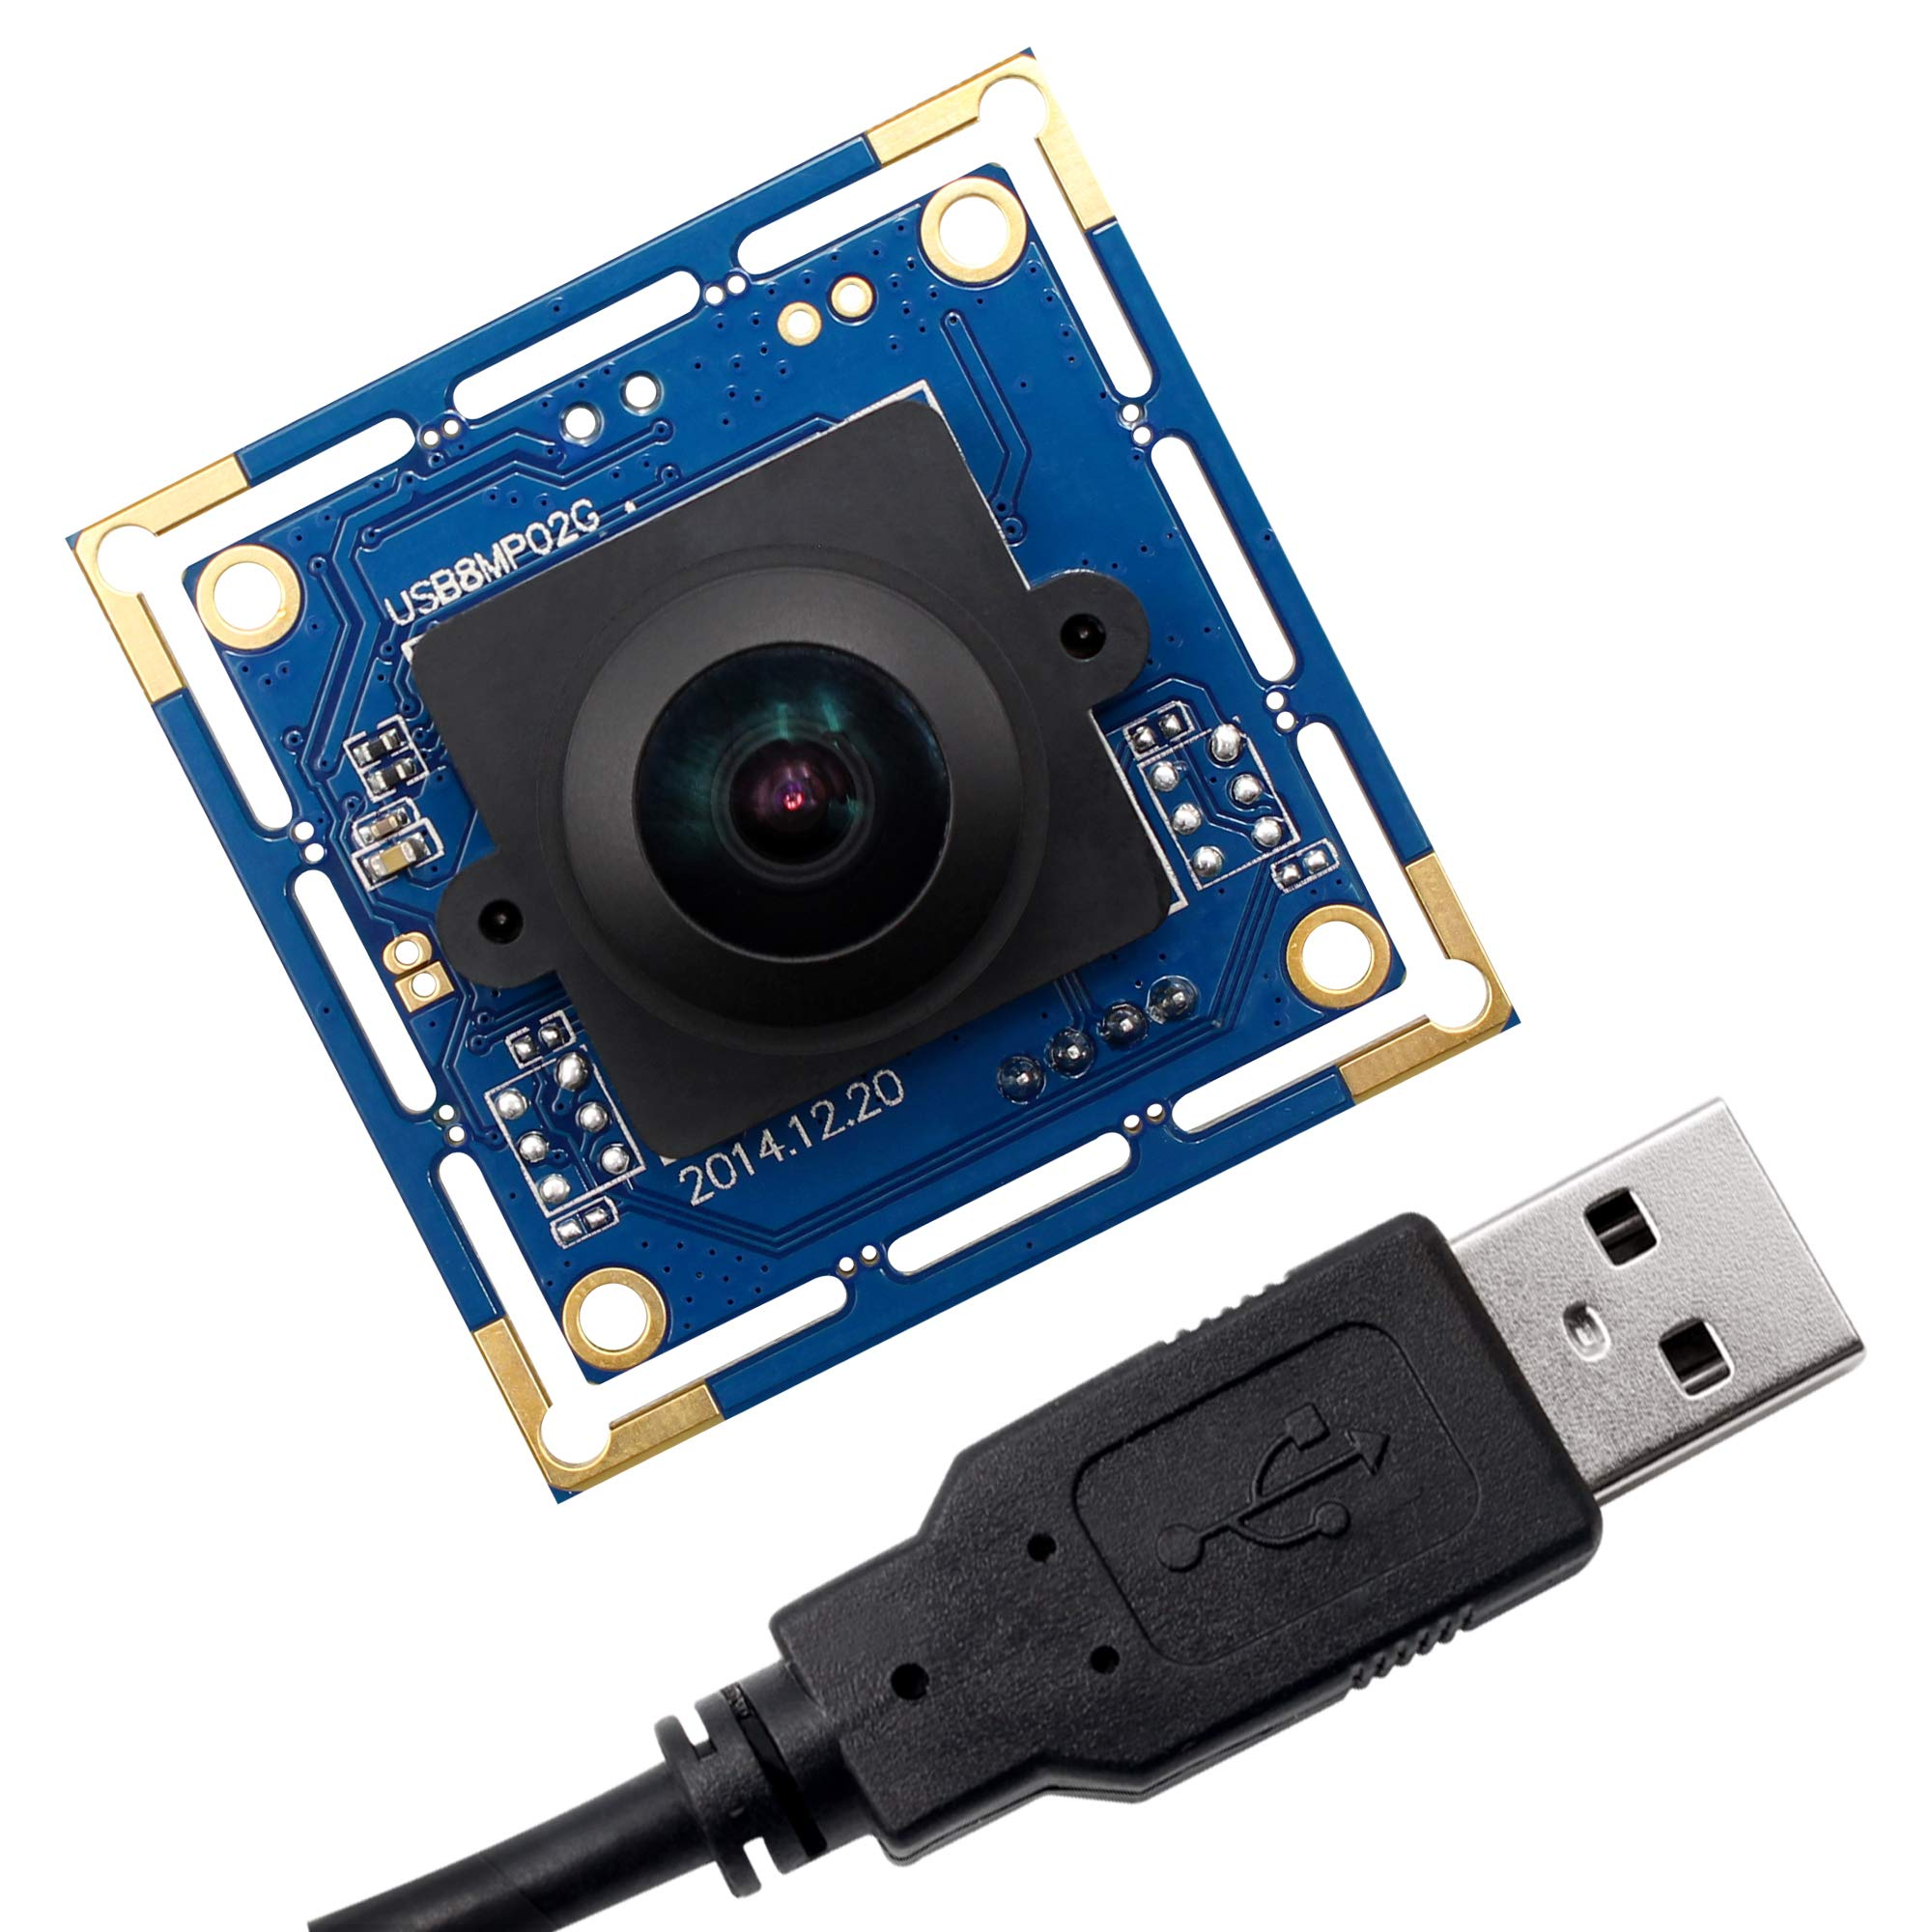 8 MP USB Camera Module with 180 Degree Fisheye Lens Webcam Super HD 3264X2448 Embeded USB Camera for Industrial,USB with Camera for Linux Windows Android Mini Web Cam Plug&Play OTG Supported Webcamera